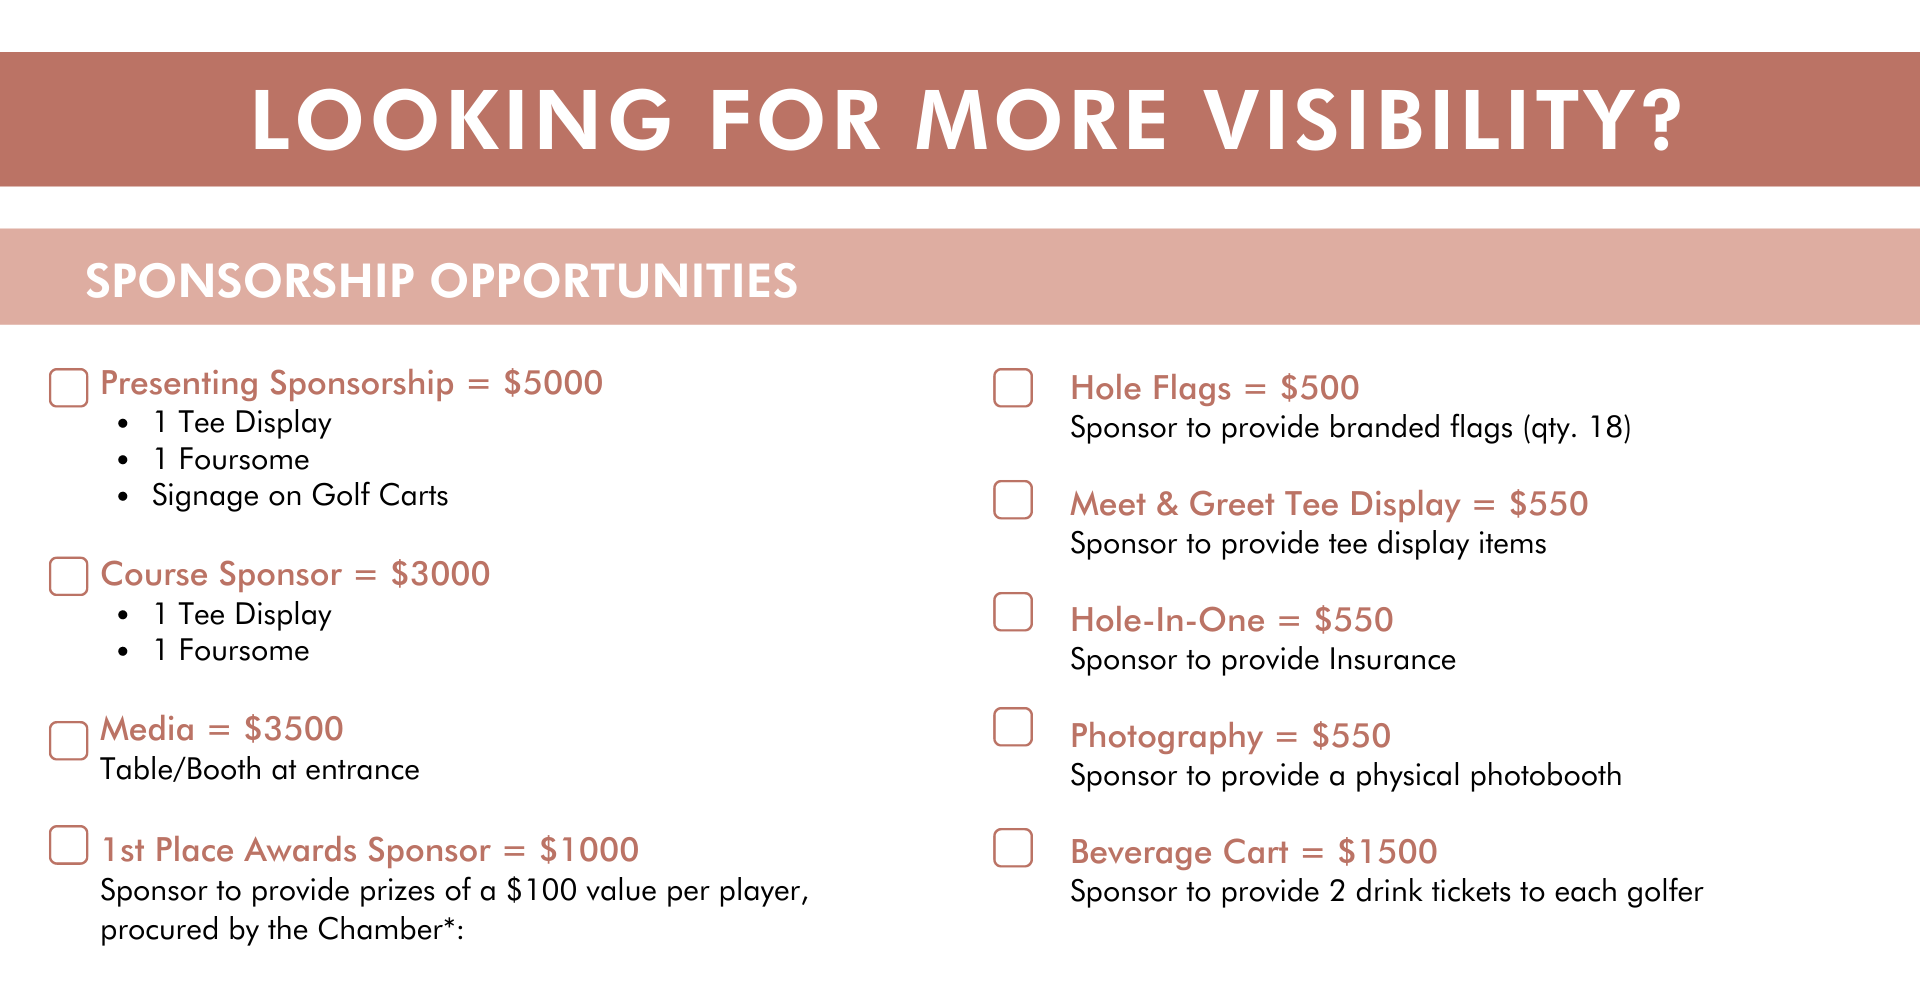 Presenting Sponsorship = $7000 1 Tee Display 1 Foursome Signage on Golf Carts    Course Sponsor = $3000 1 Tee Display 1 Foursome  Media = $3500  Table/Booth at entrance   1st Place Awards Sponsor = $1000 Sponsor to provide prizes of a $100 value per player, procured by the Chamber*: Hole Flags = $500 Sponsor to provide branded flags (qty. 18)  Meet & Greet Tee Display = $550 Sponsor to provide tee display items  Hole-In-One = $550 Sponsor to provide Insurance  Photography = $550 Sponsor to provide a physical photobooth  Beverage Cart = $1500 Sponsor to provide 2 drink tickets to each golfer looking for more visibility sponsorship opportunities